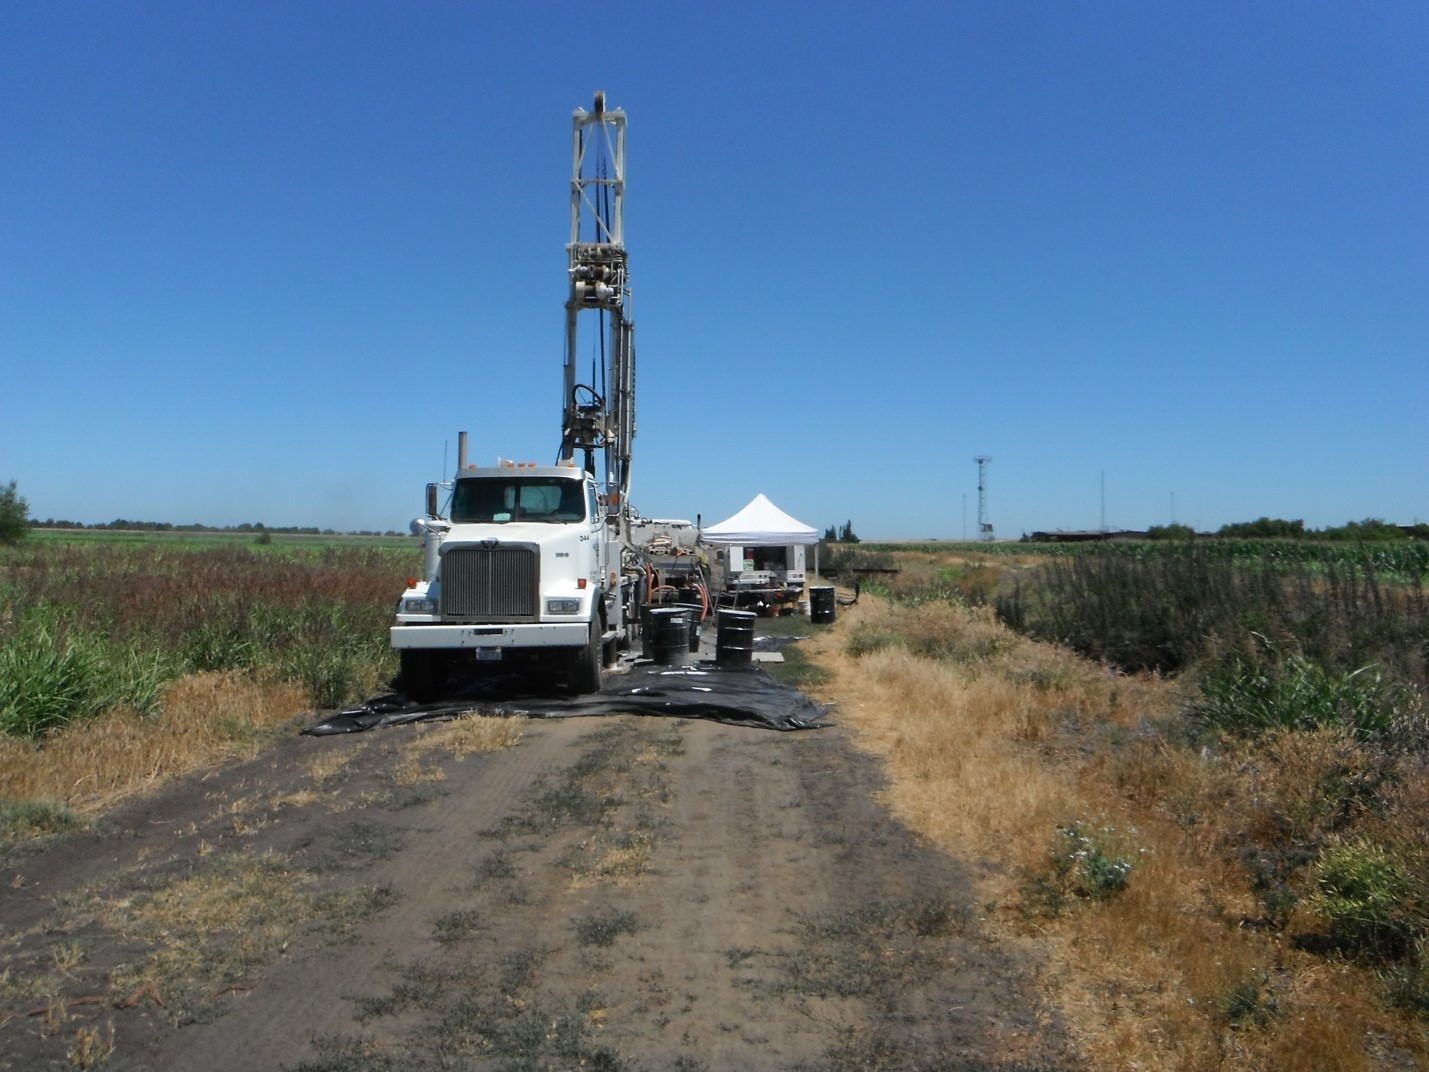 Photo of truck-mounted drill rig with support trucks and equipment used for soil exploration. A temporary tent structure by the drill rig is used to process soil samples and provide shade for the working crew.